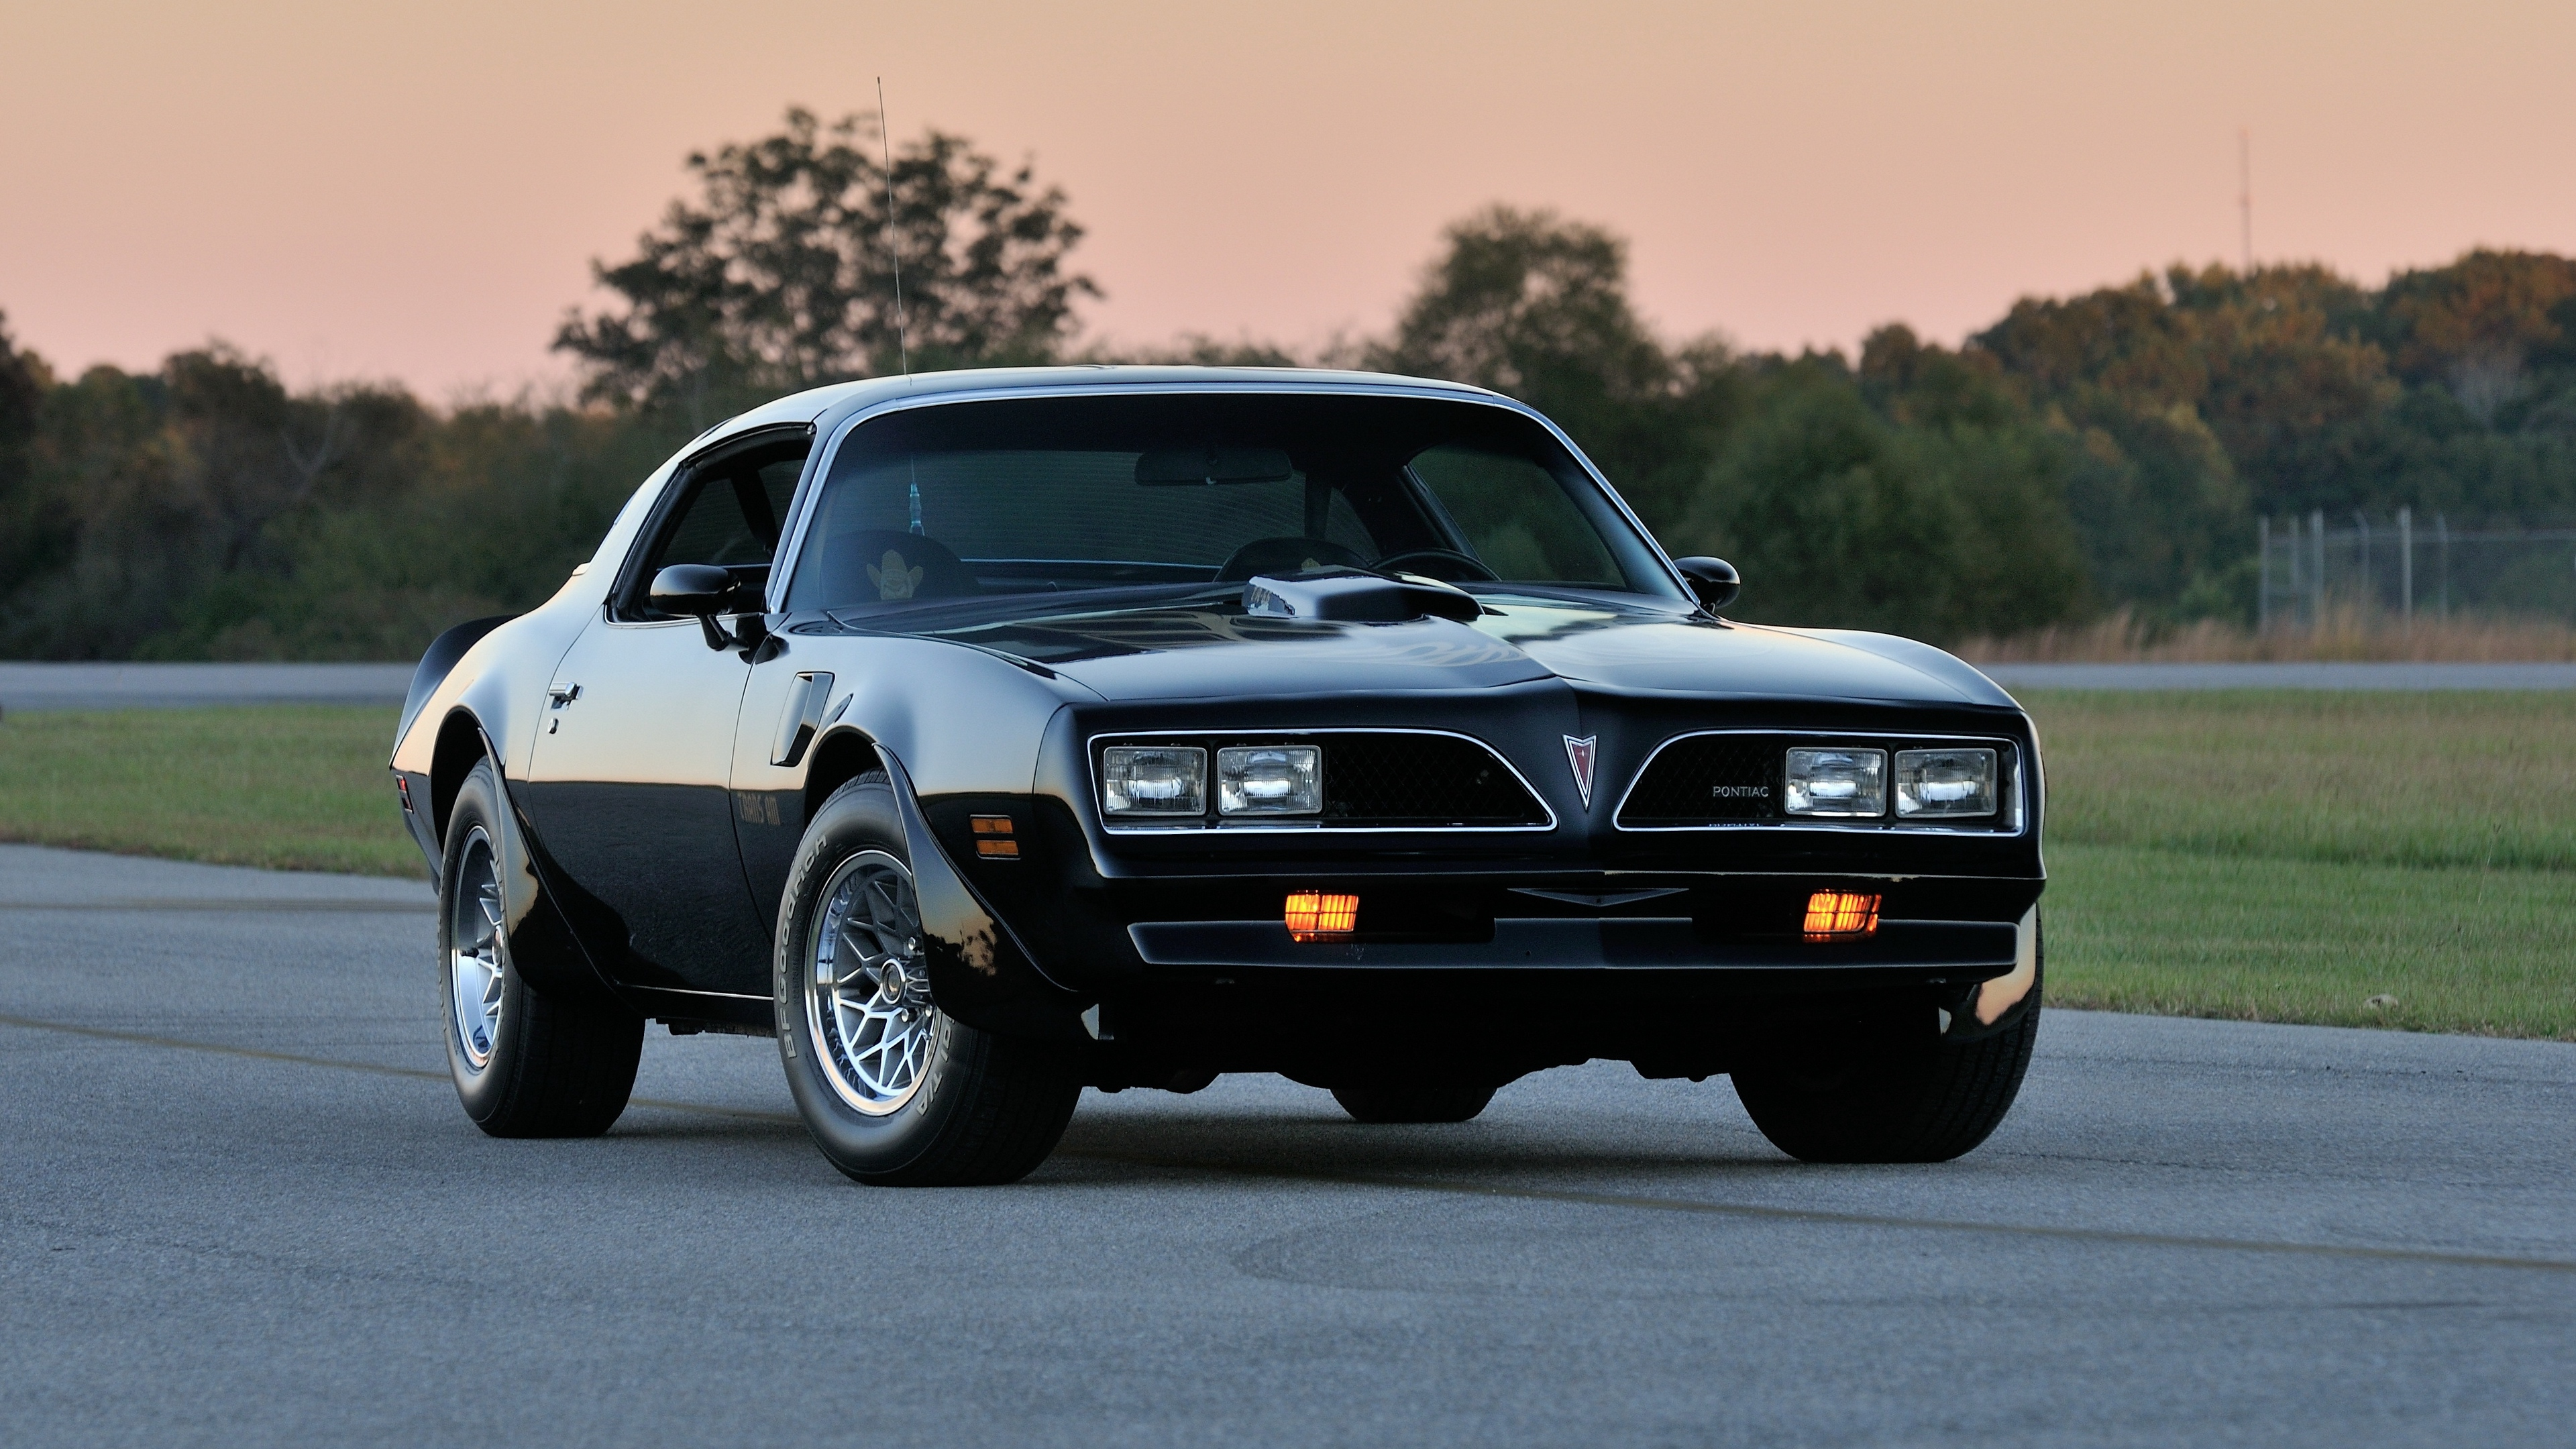 Download wallpaper 3840x2160 pontiac firebird trans am ws6 4k 3840x2160